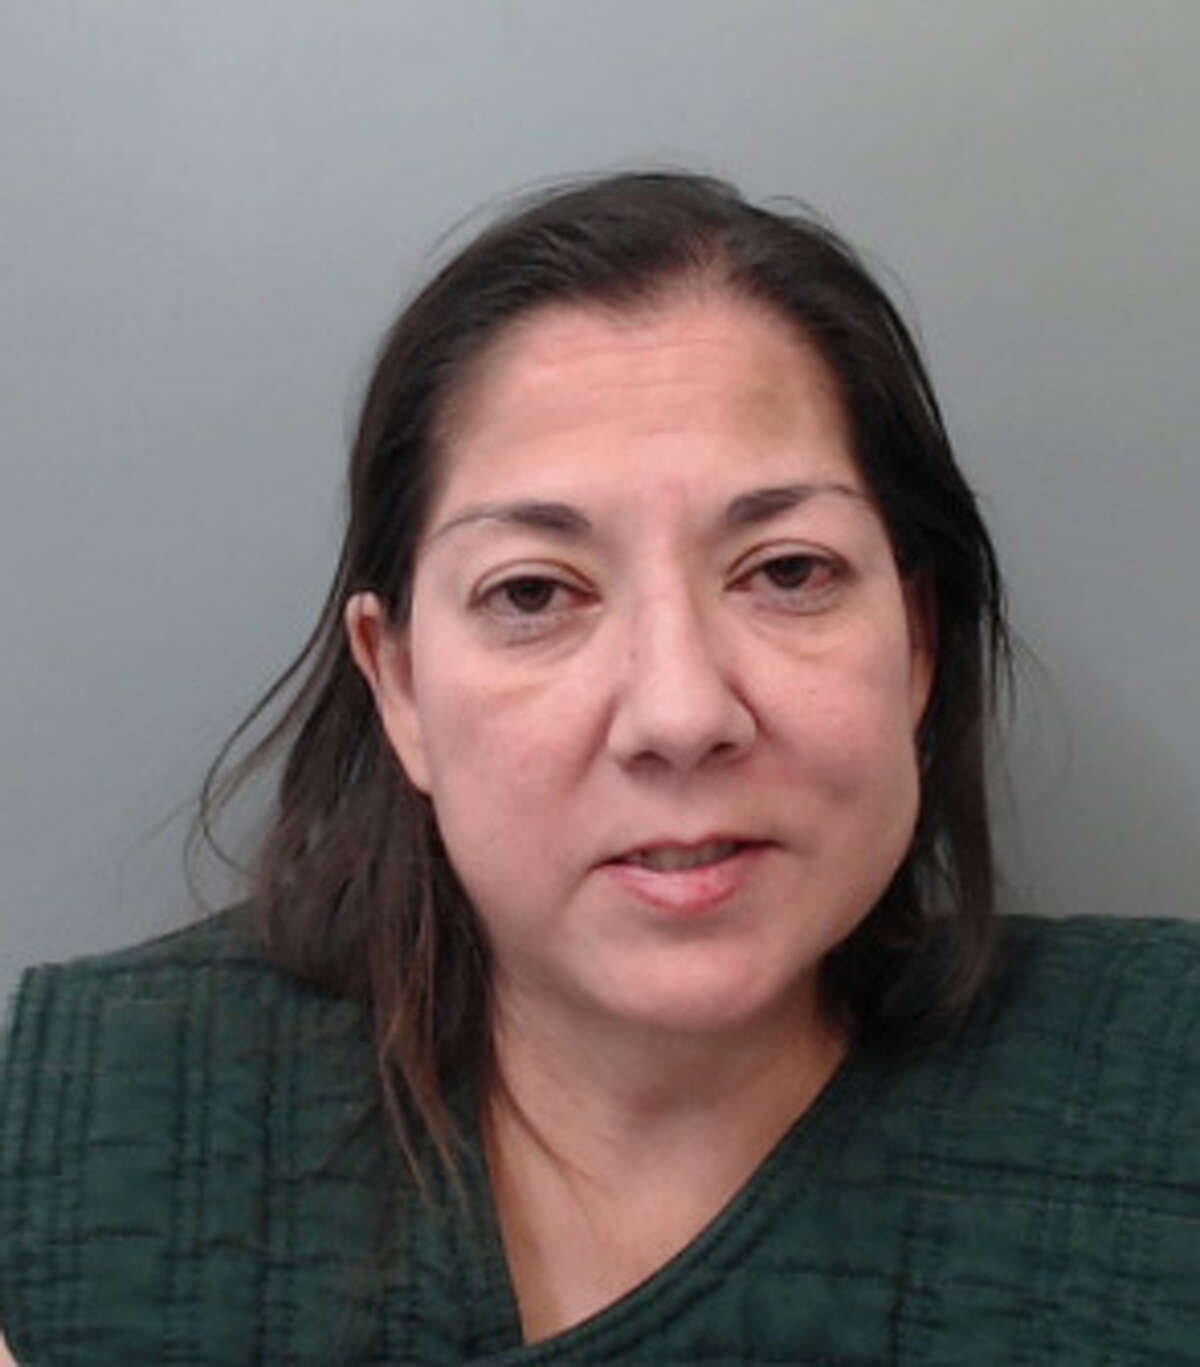 Amy Ann Alaniz, 49, was charged with making silent abusive calls to 911 and resisting arrest.